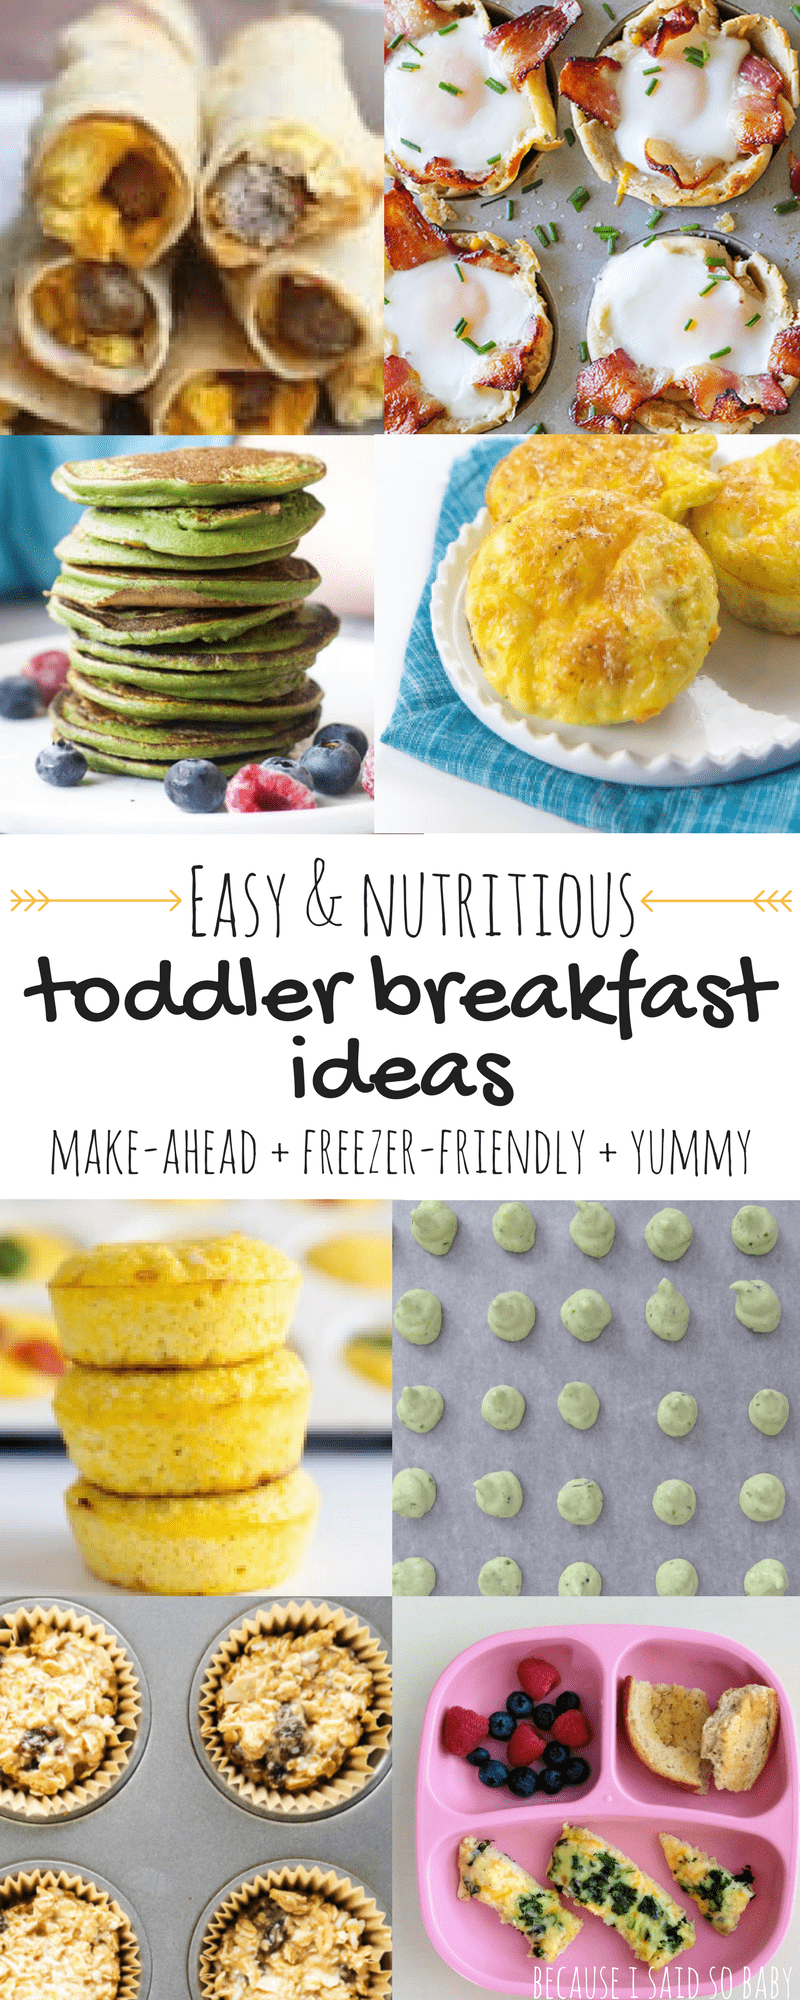 8 Healthy Toddler Breakfast Ideas images